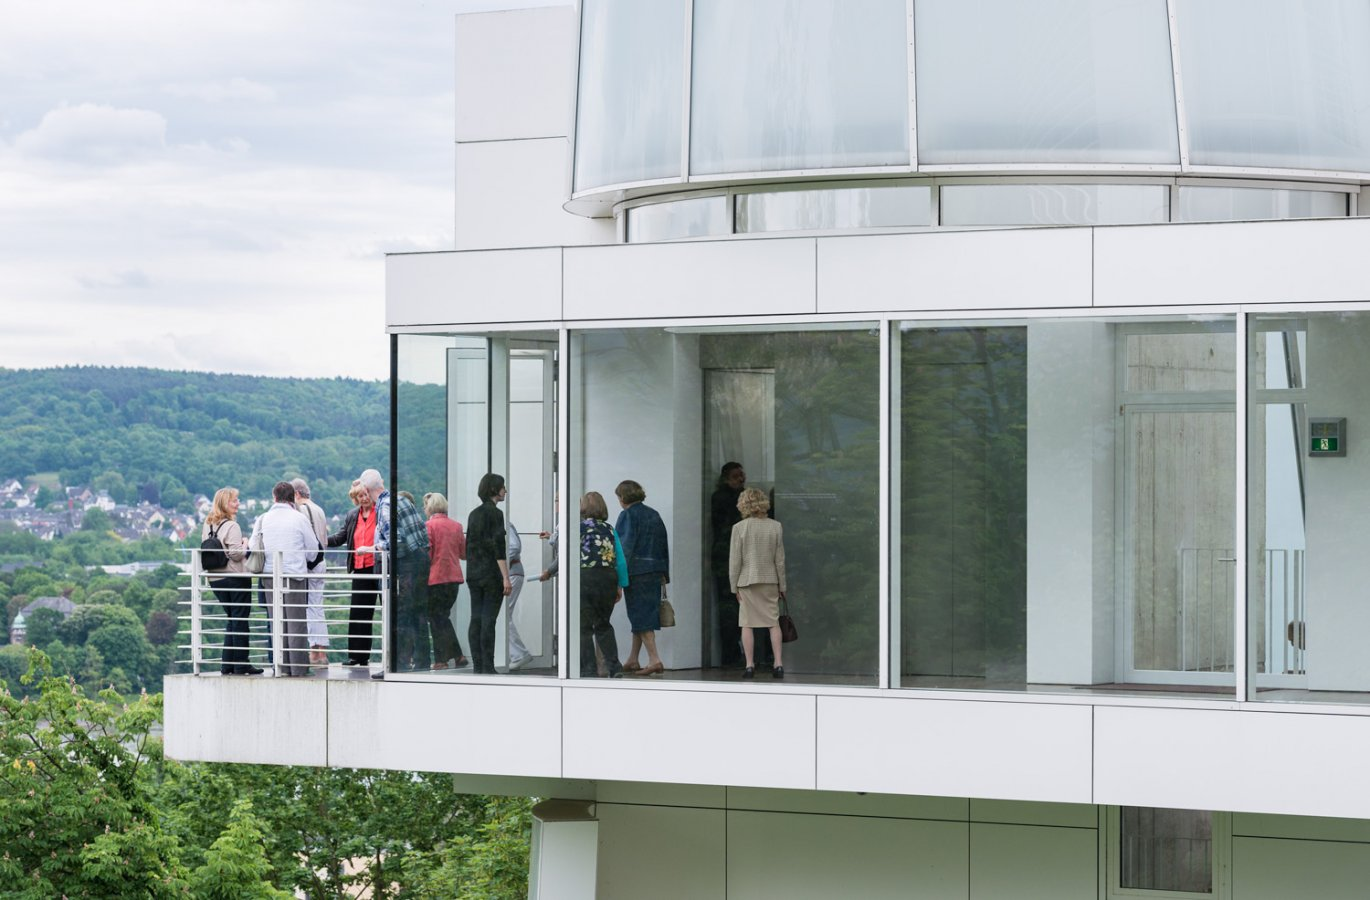 Richard Meier Building, balcony and passage to the elevators © Arp Museum Bahnhof Rolandseck, photo: David Ertl